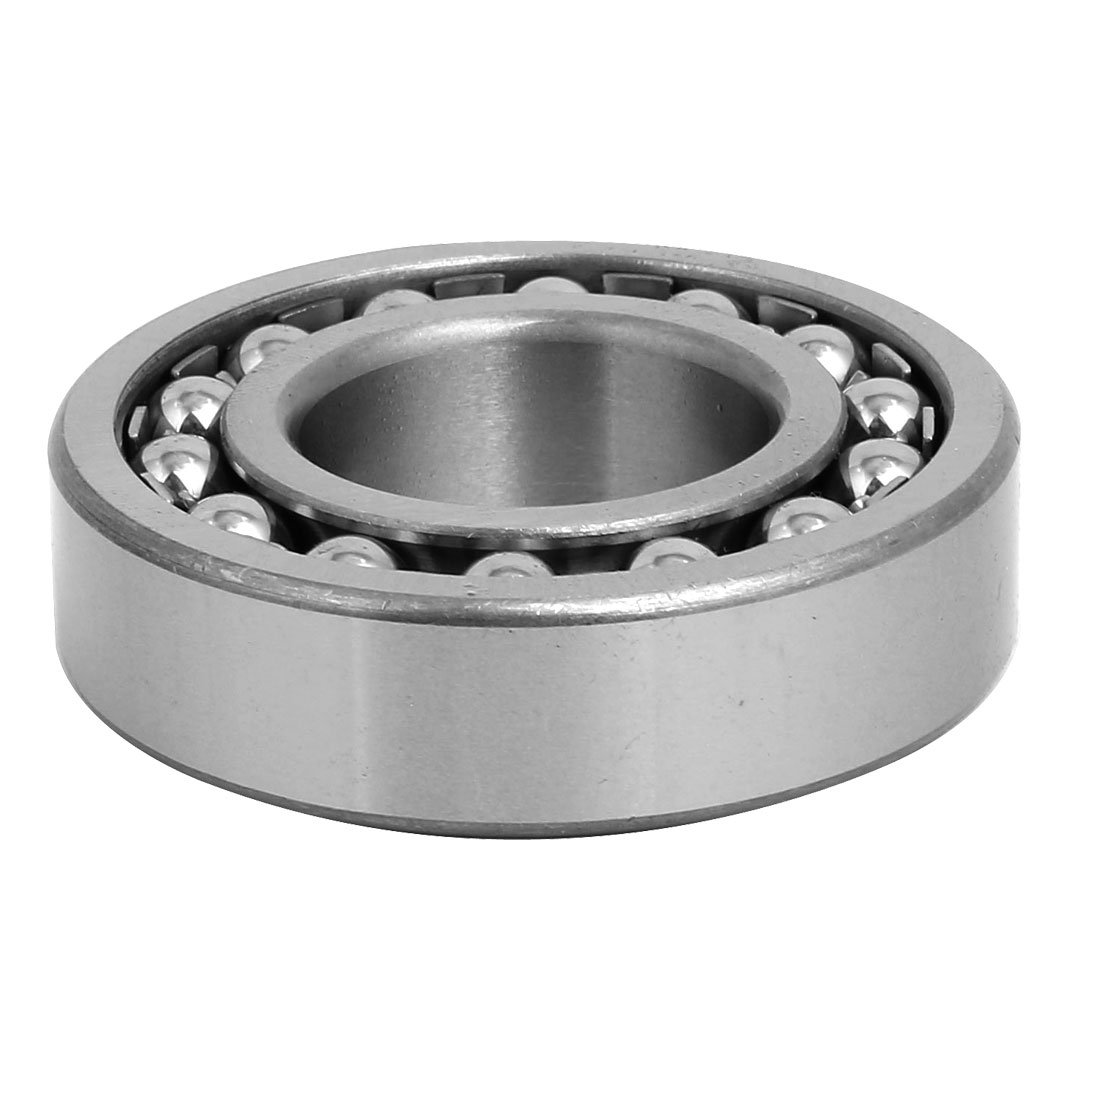 uxcell 30mm Inner Dia 62mm OD 16mm Thickness Self Aligning Ball Bearing 1206